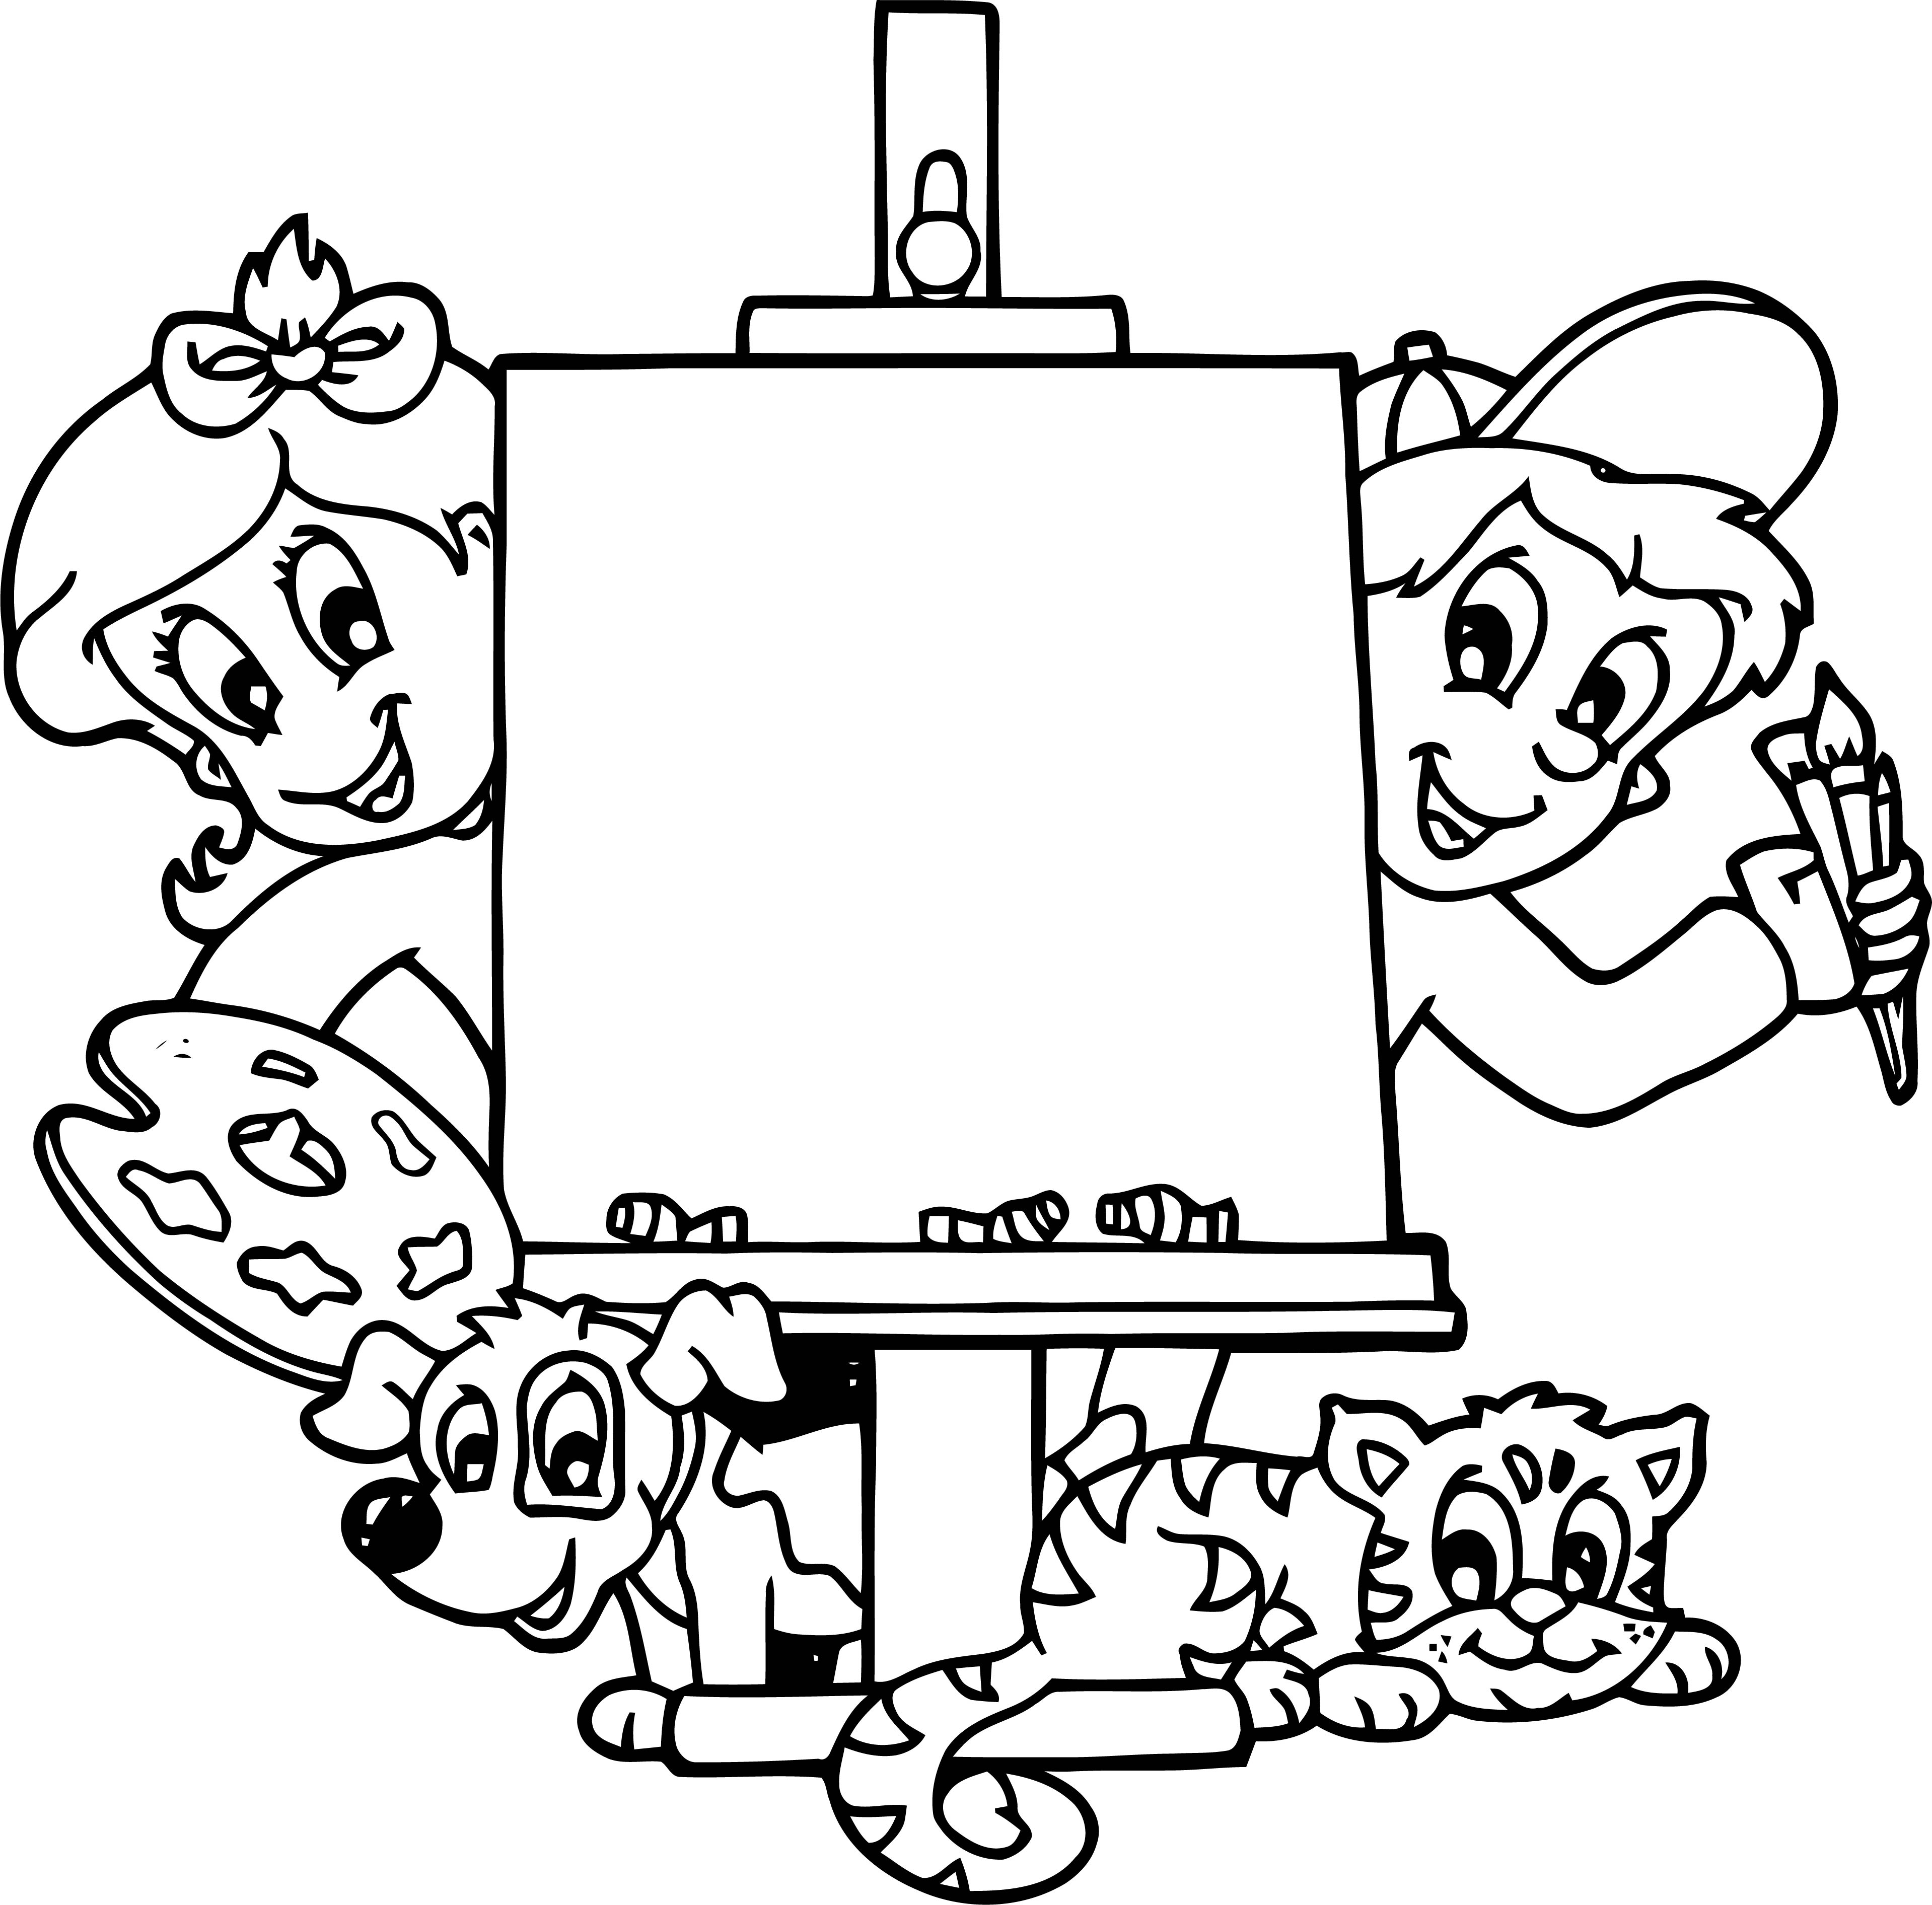 Painter Cartoon Kids Animal Cat Dog Coloring Page